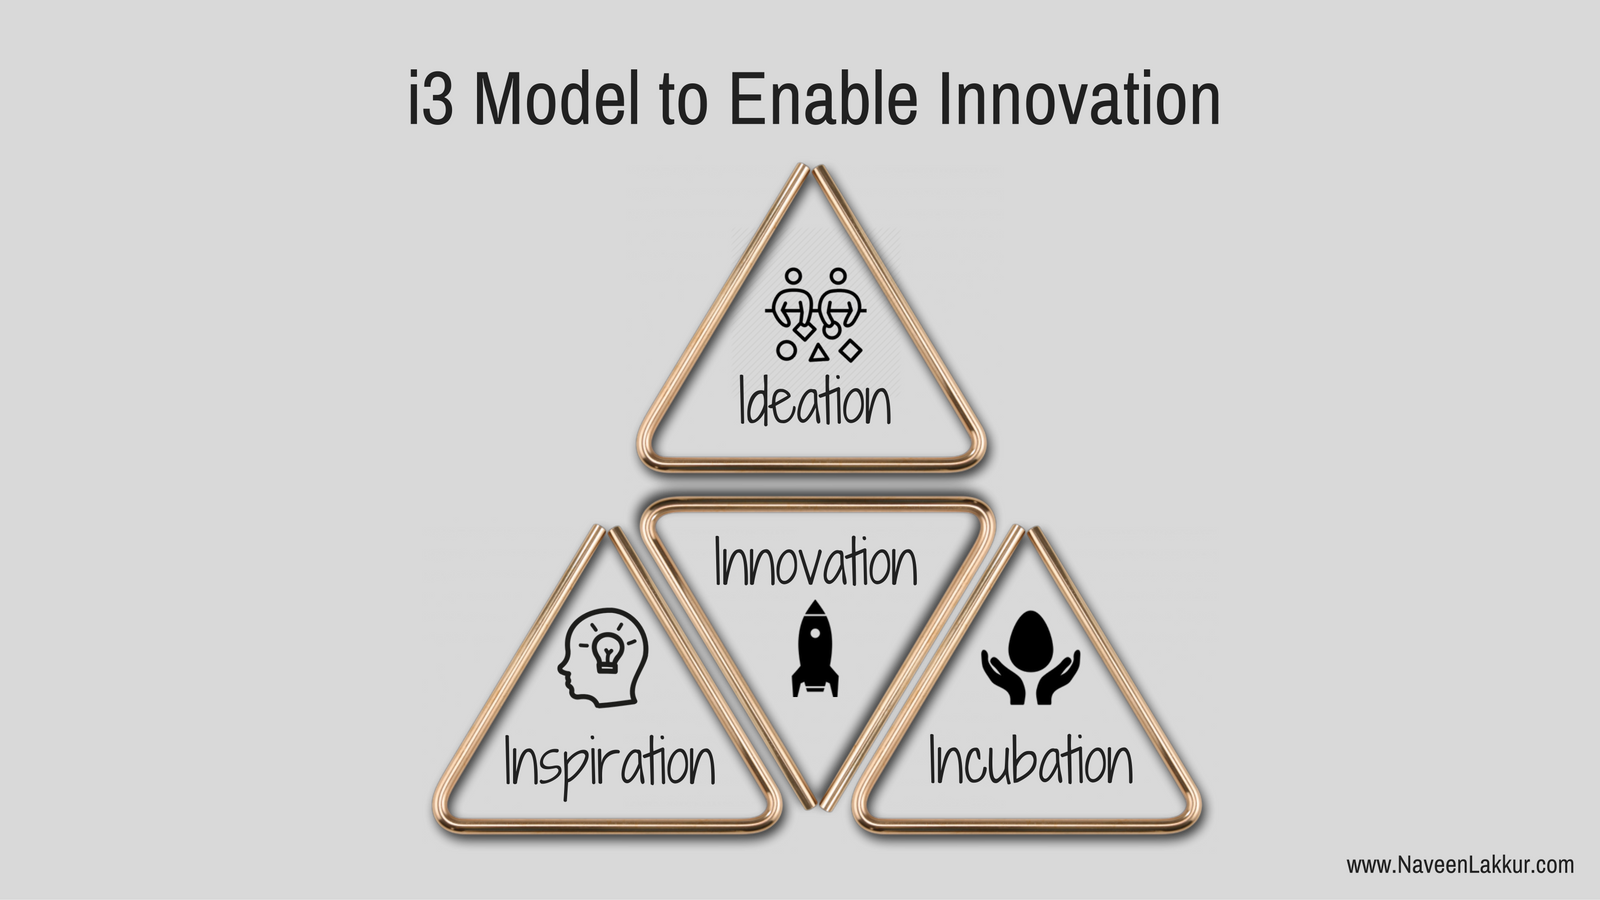 The 3 Important Angles of Innovation - By Naveen Lakkur